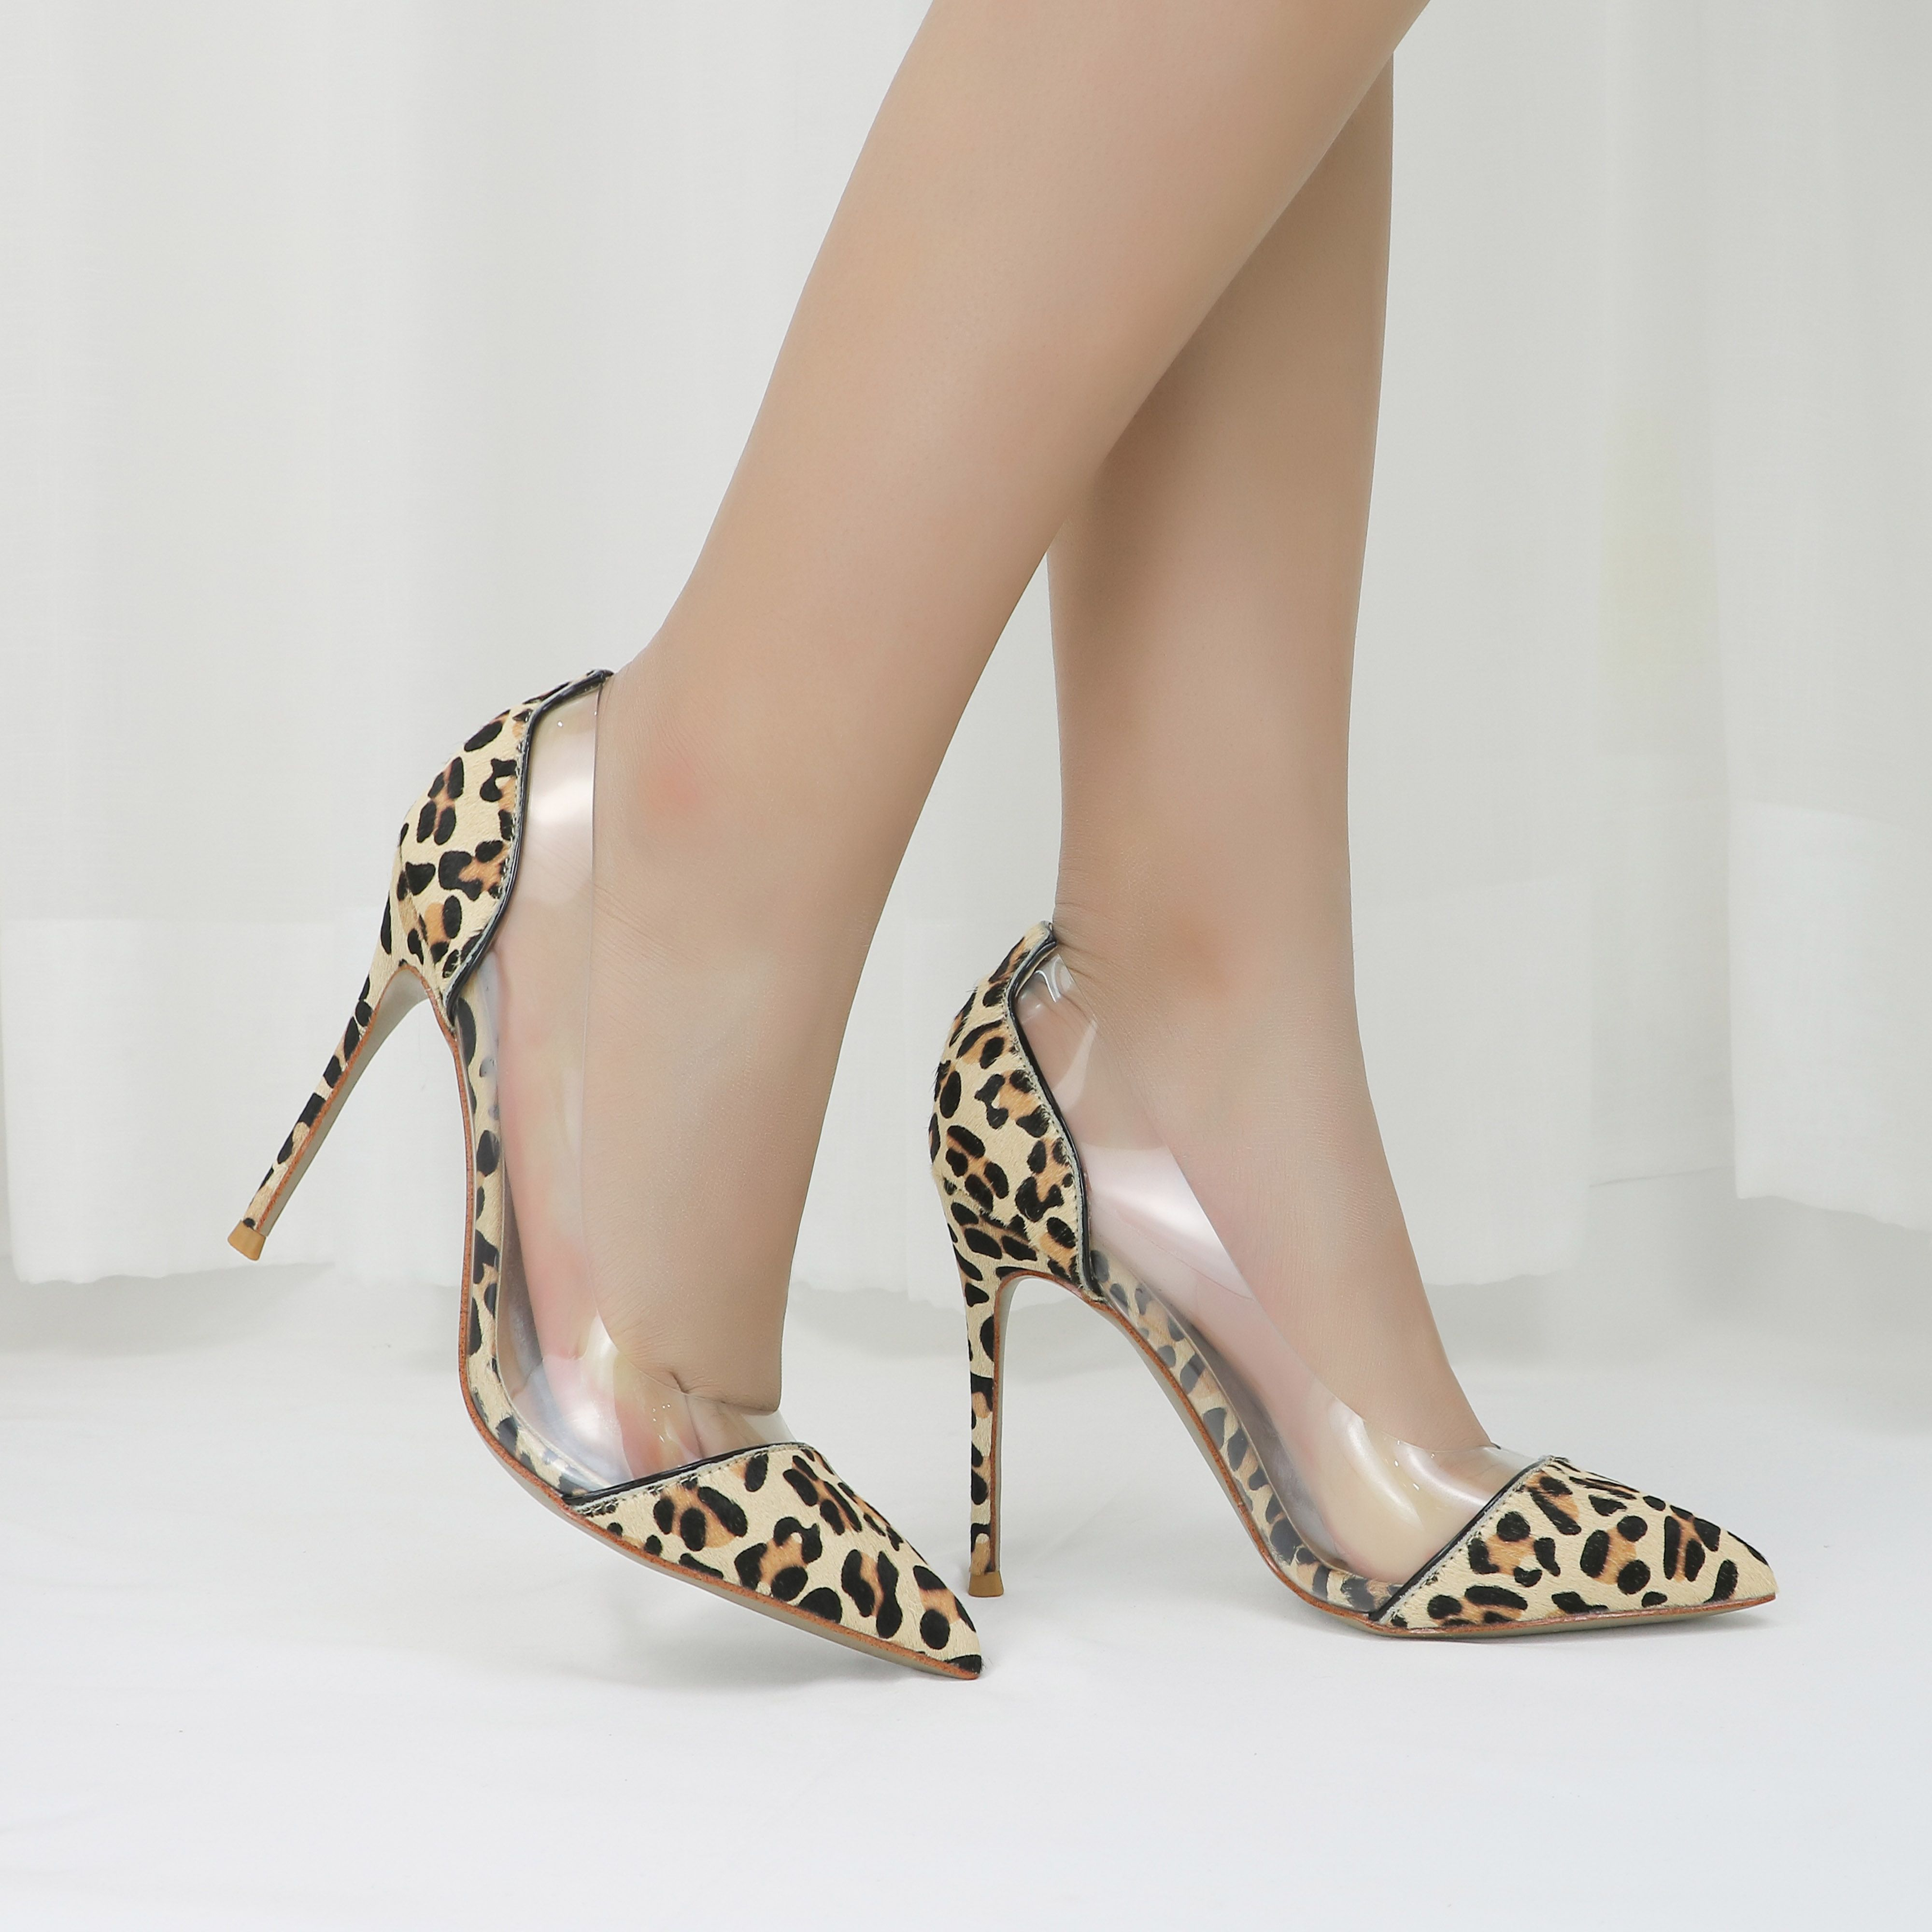 gran descuento 4eacf 54ae5 2018 leopard trend fashion high heels for woman | fashion in ...